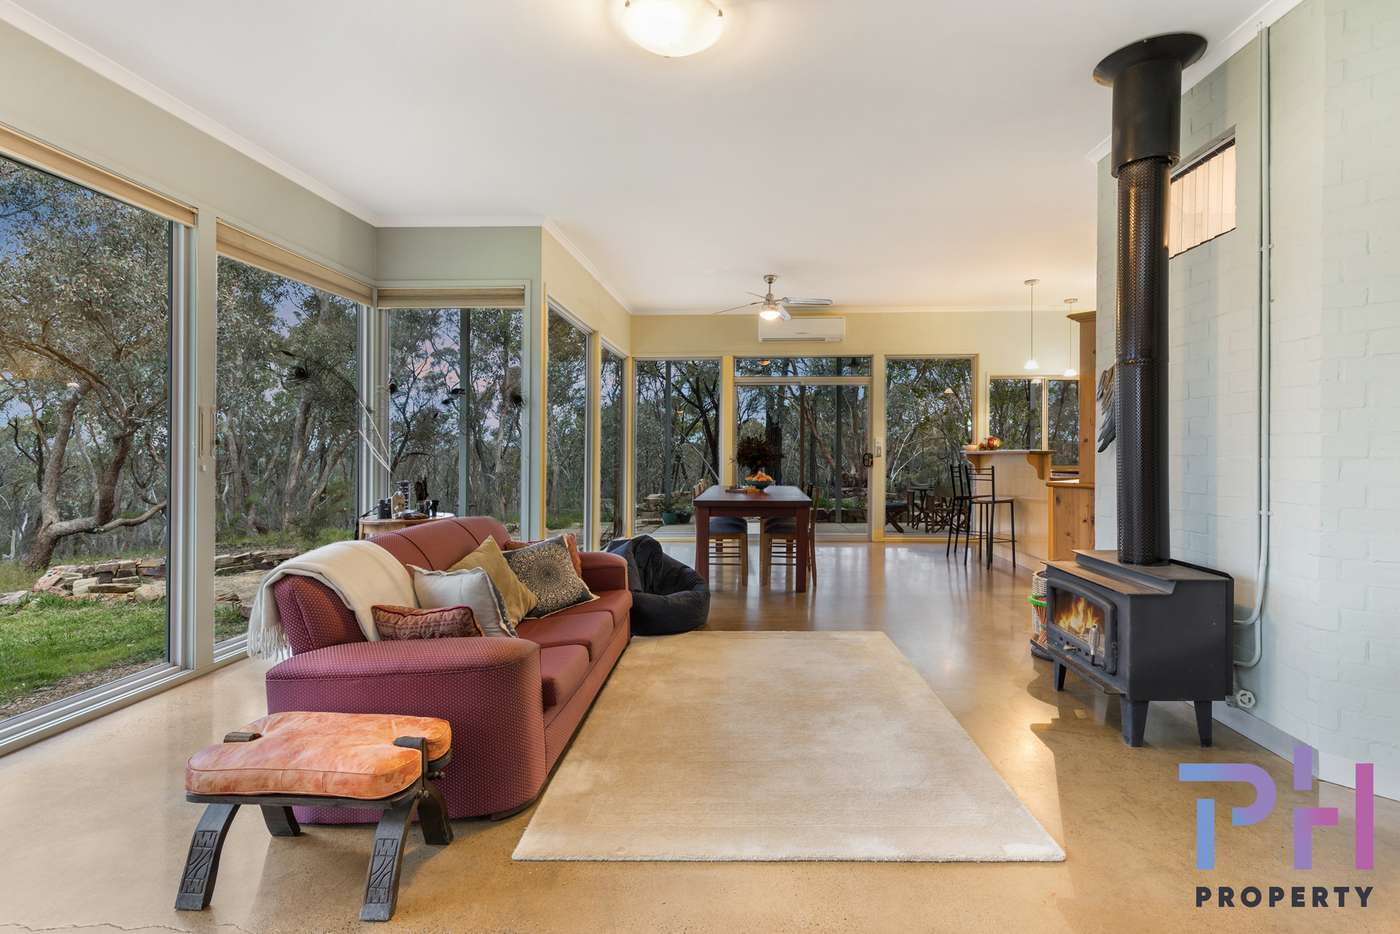 Fifth view of Homely house listing, 50 Fadersons Lane, Mandurang VIC 3551